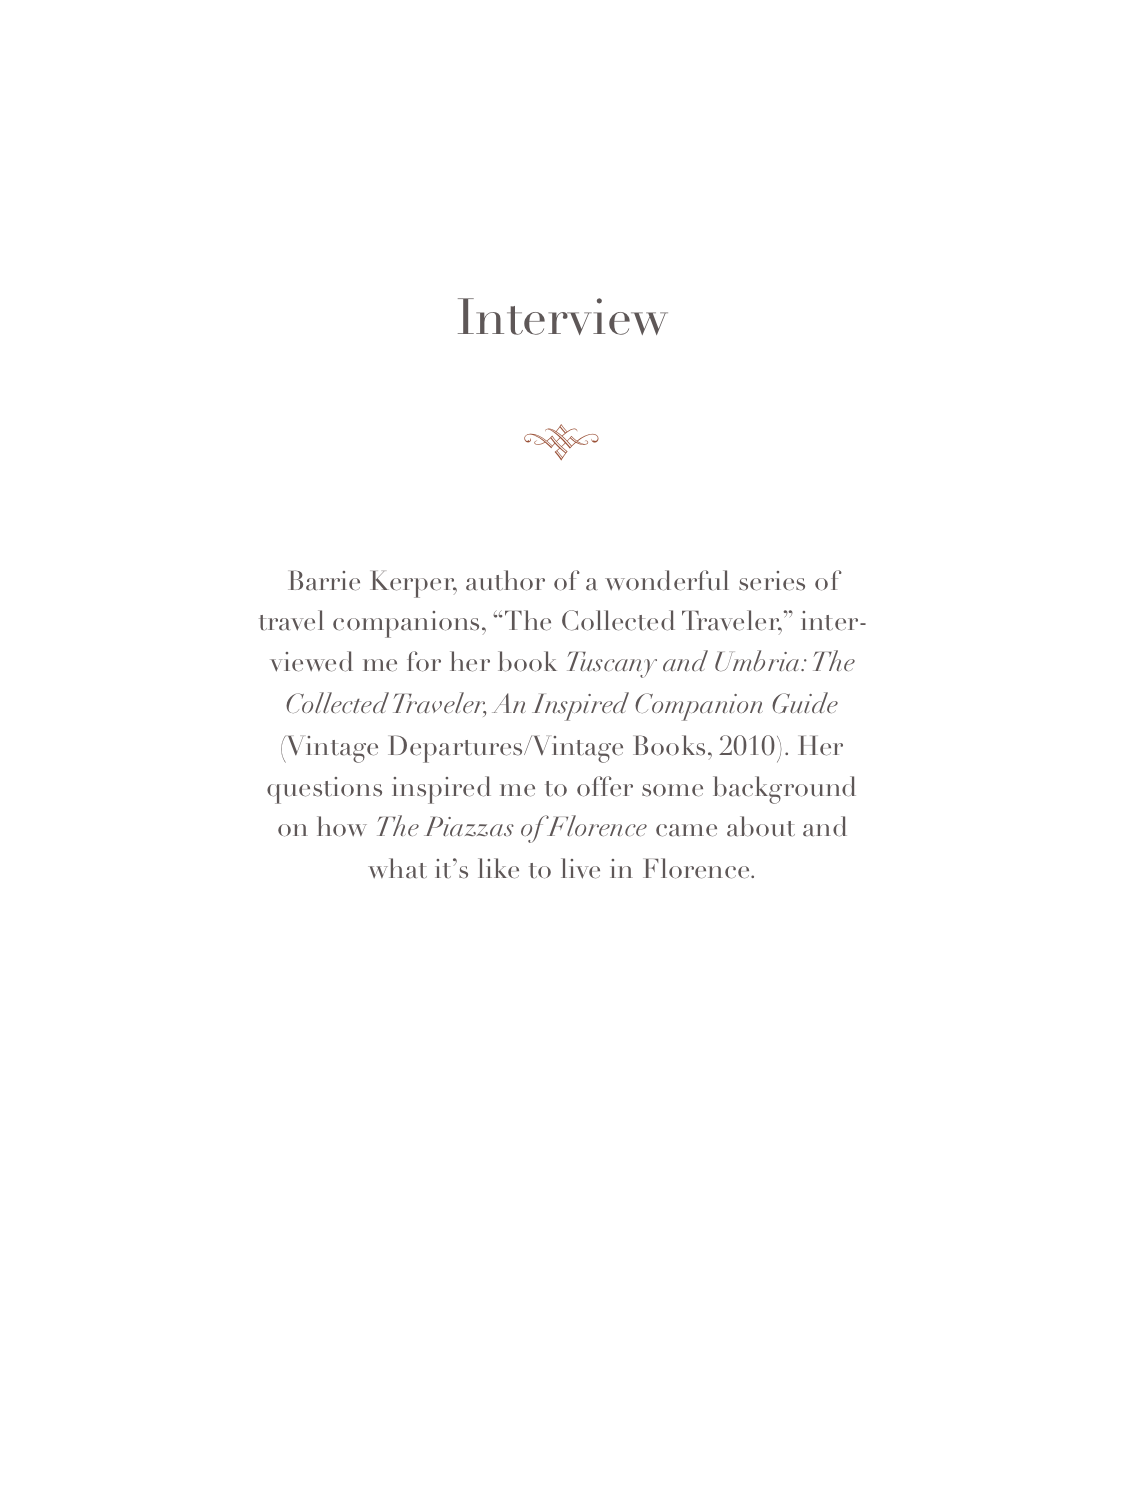 Edited Barrie Kerper interview.pages.png